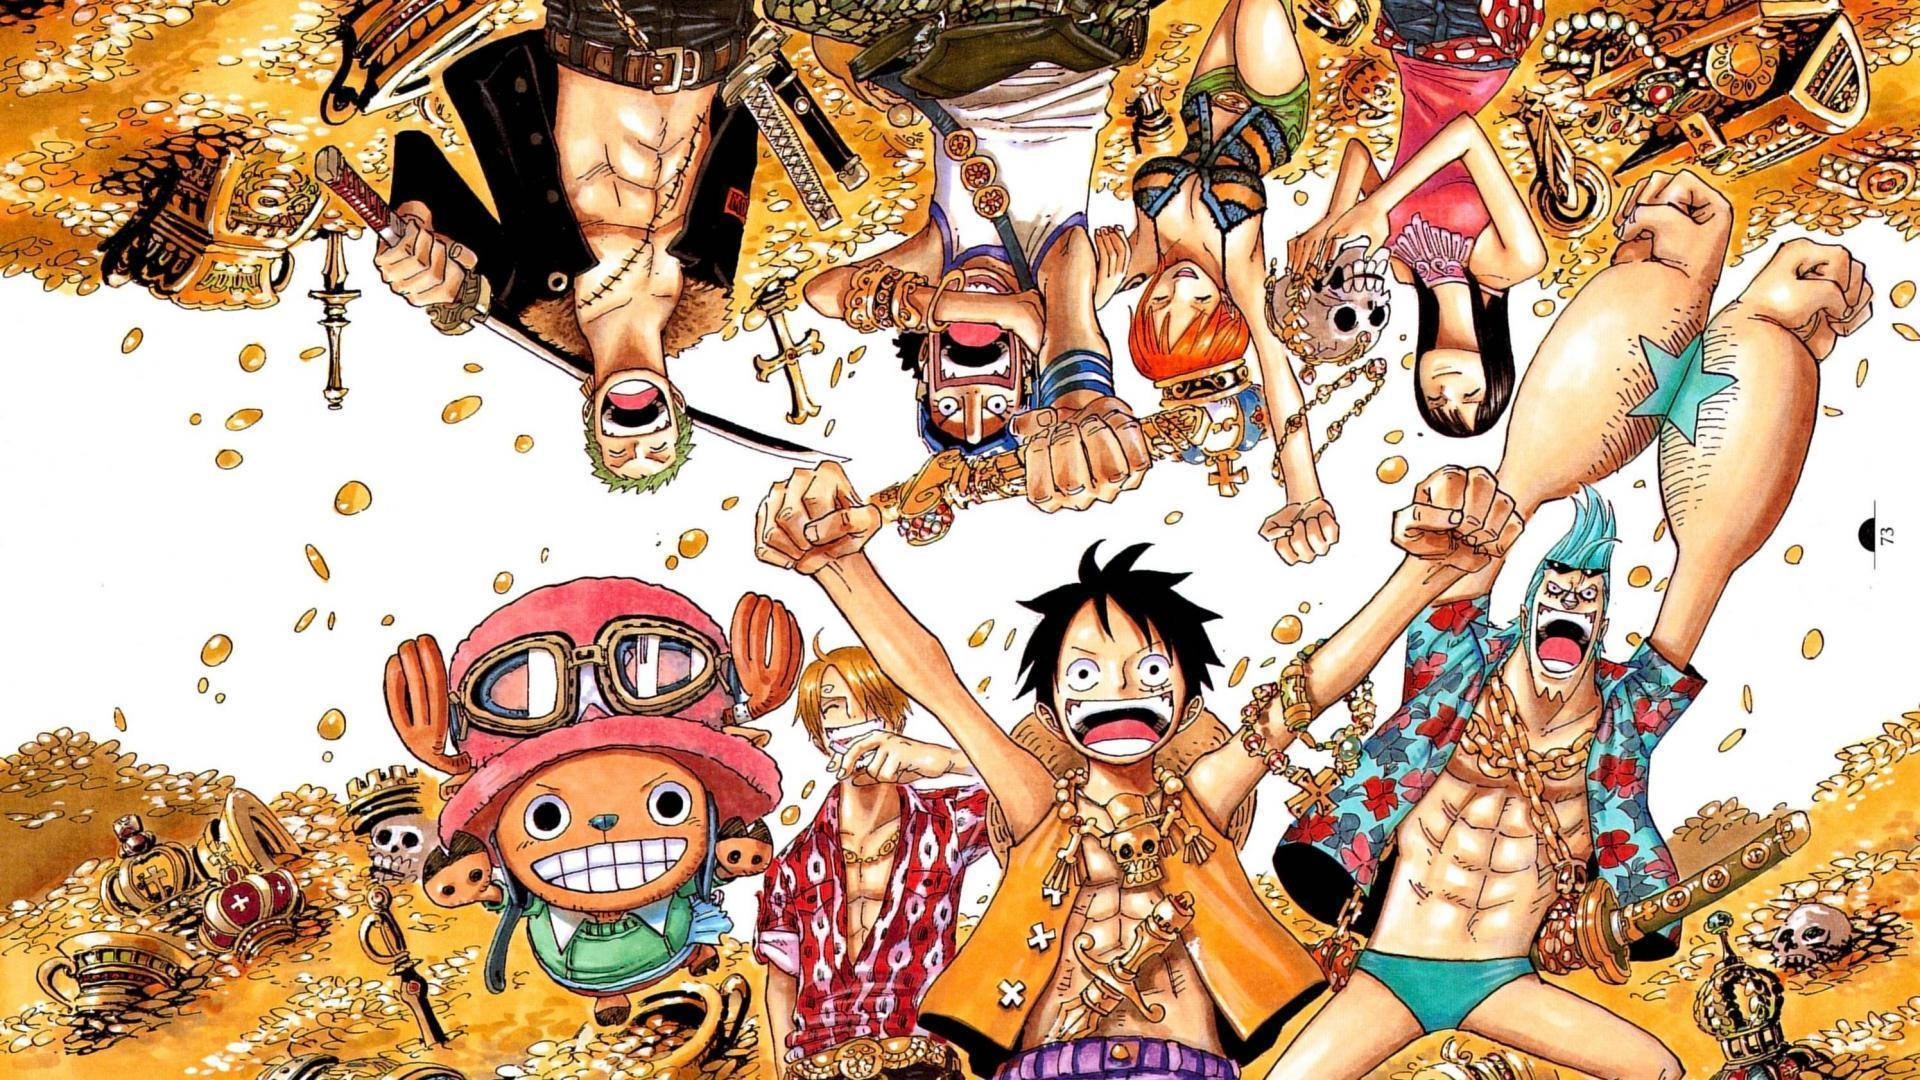 HD One Piece Wallpaper Backgrounds For Download Beautiful